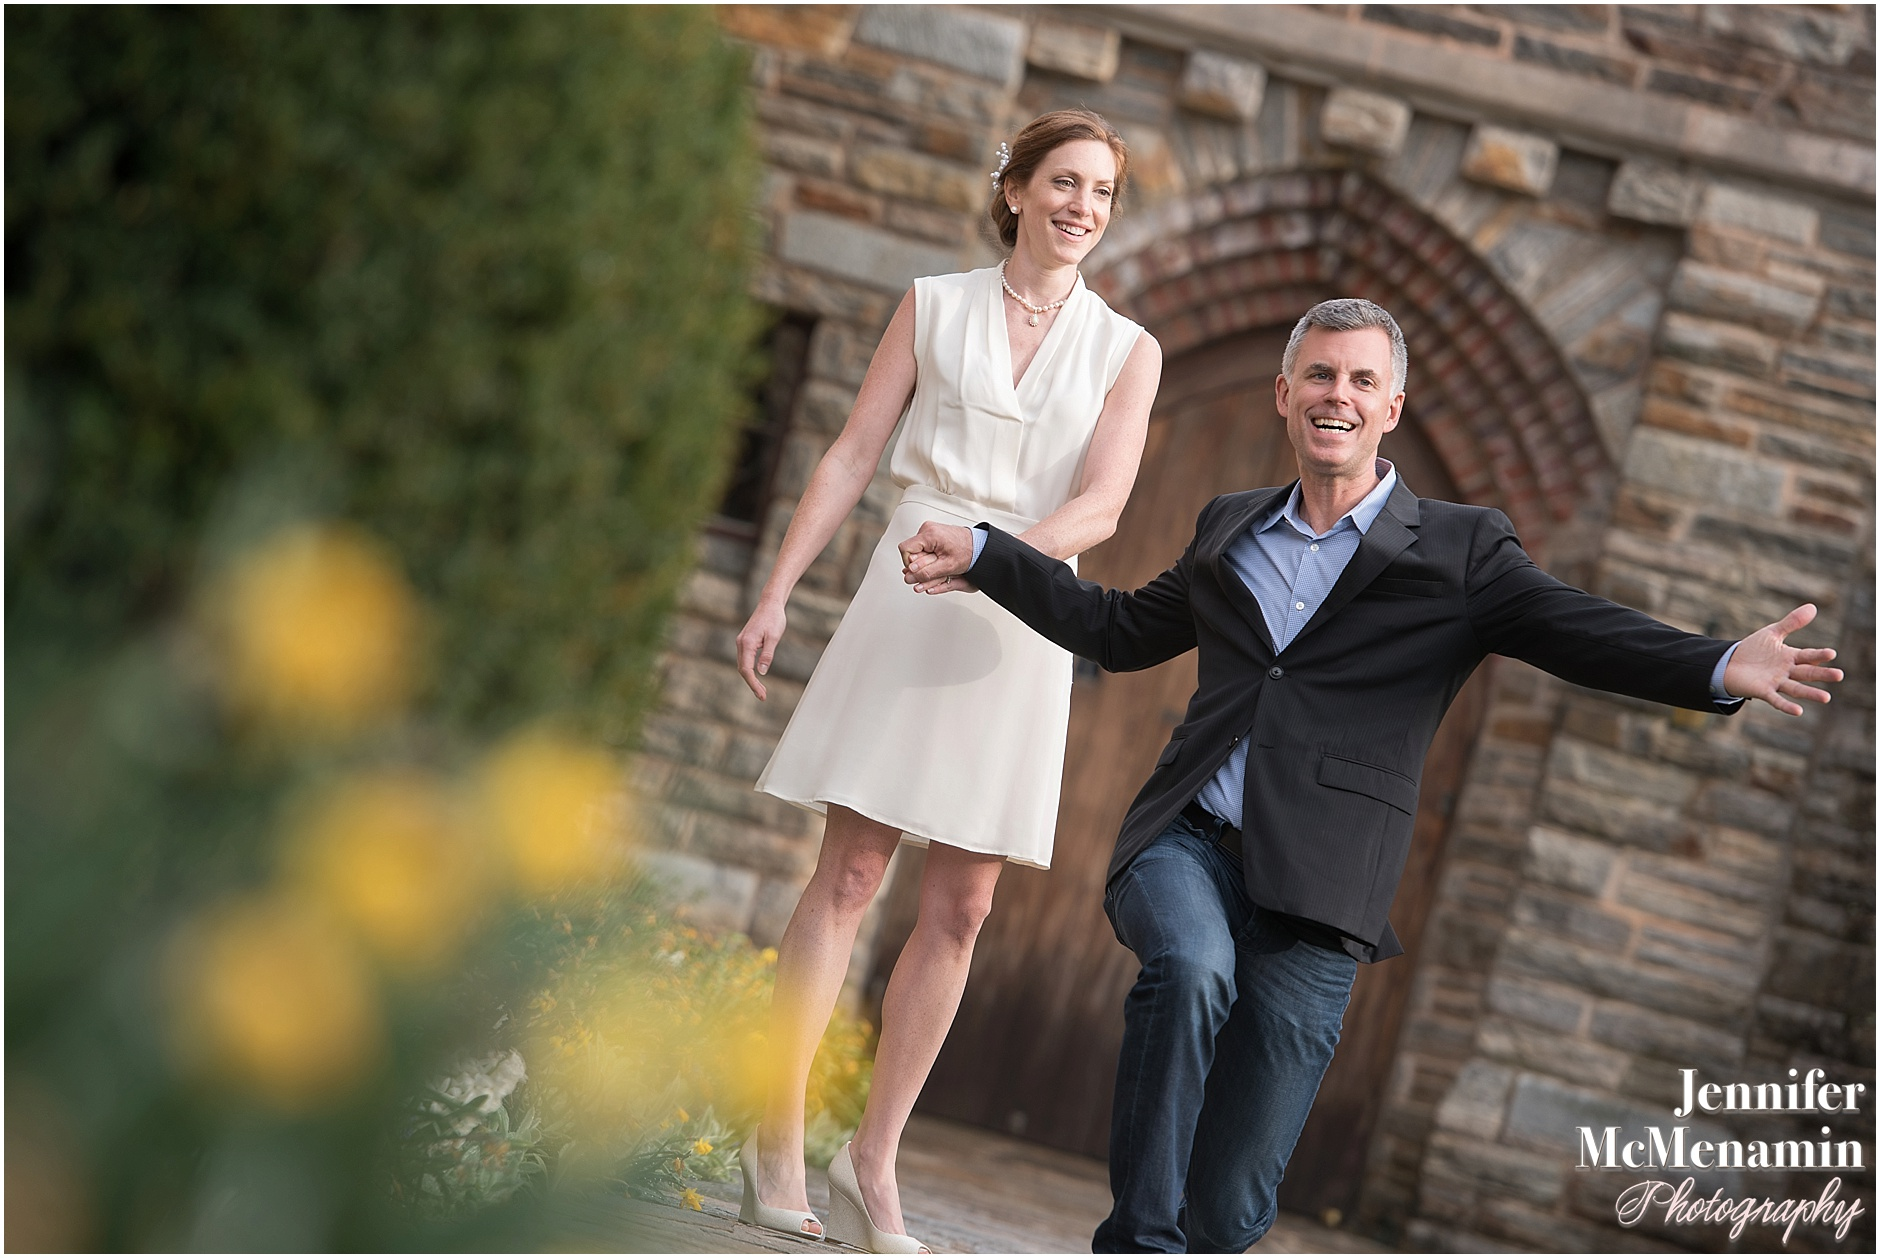 012-KnippLingle_0392-0110_Jennifer-McMenamin-Photography-Baltimore-engagement-photos